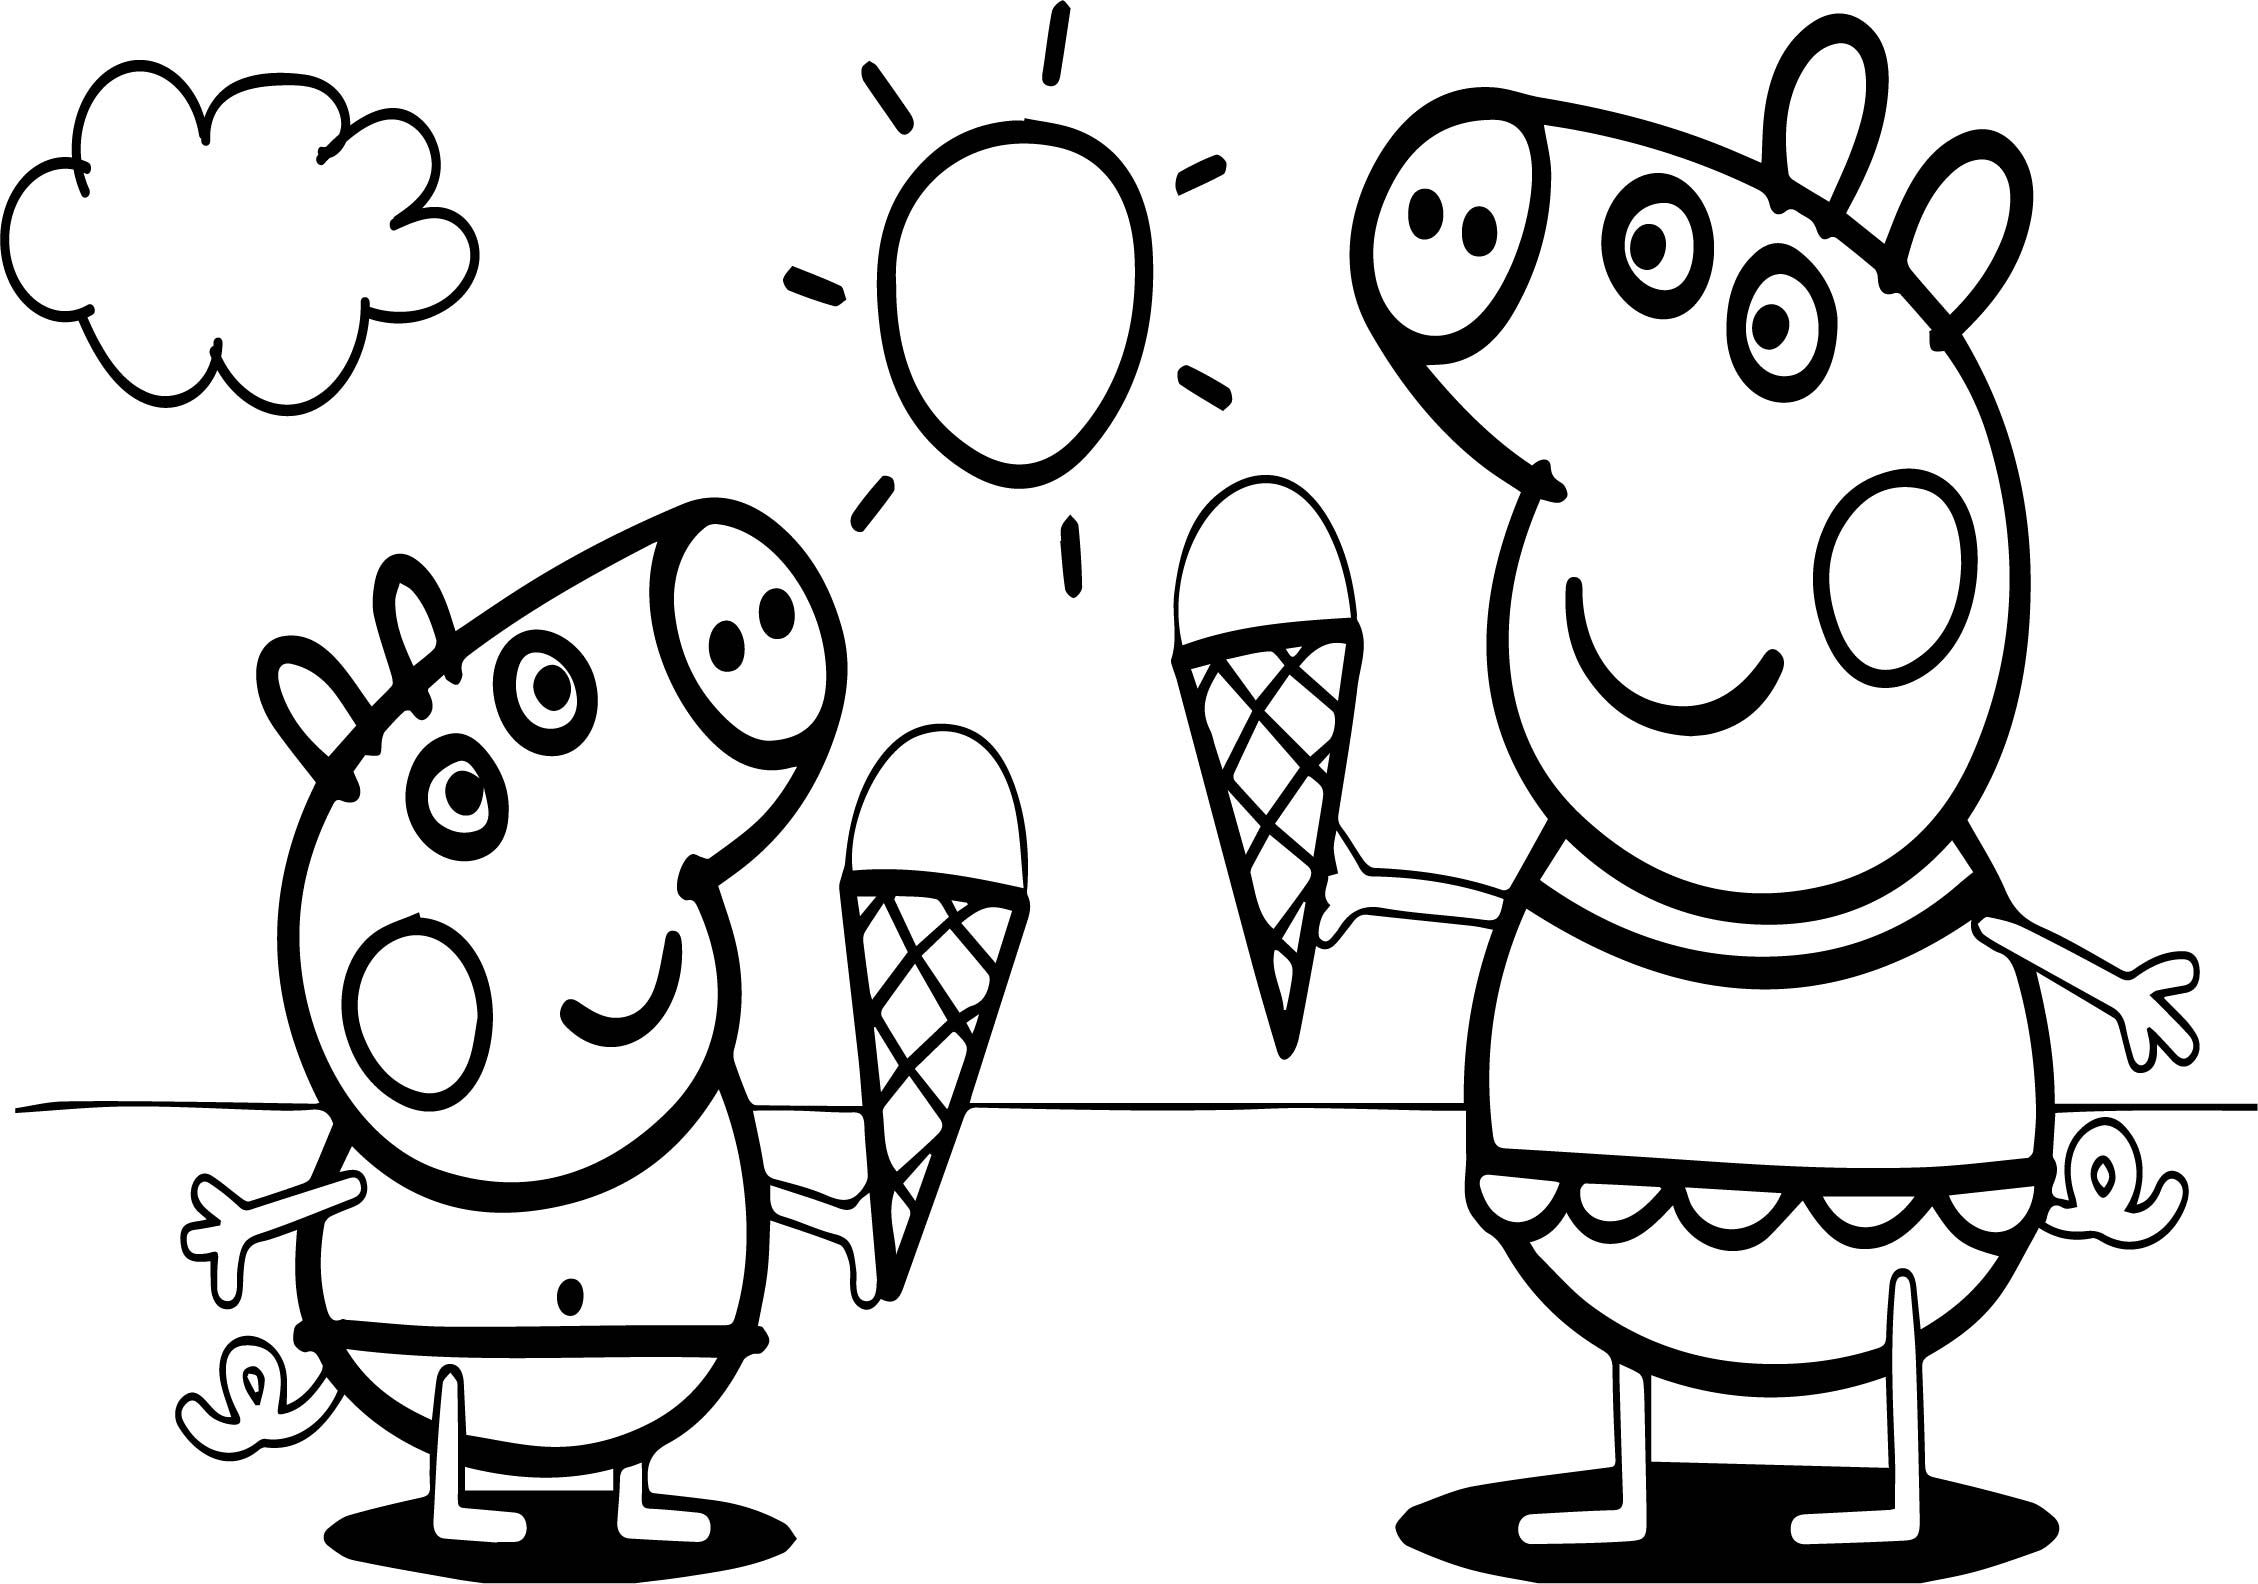 Awesome Peppa Pig Video Free Coloring Page Peppa Pig Coloring Pages Peppa Pig Colouring Fairy Coloring Pages